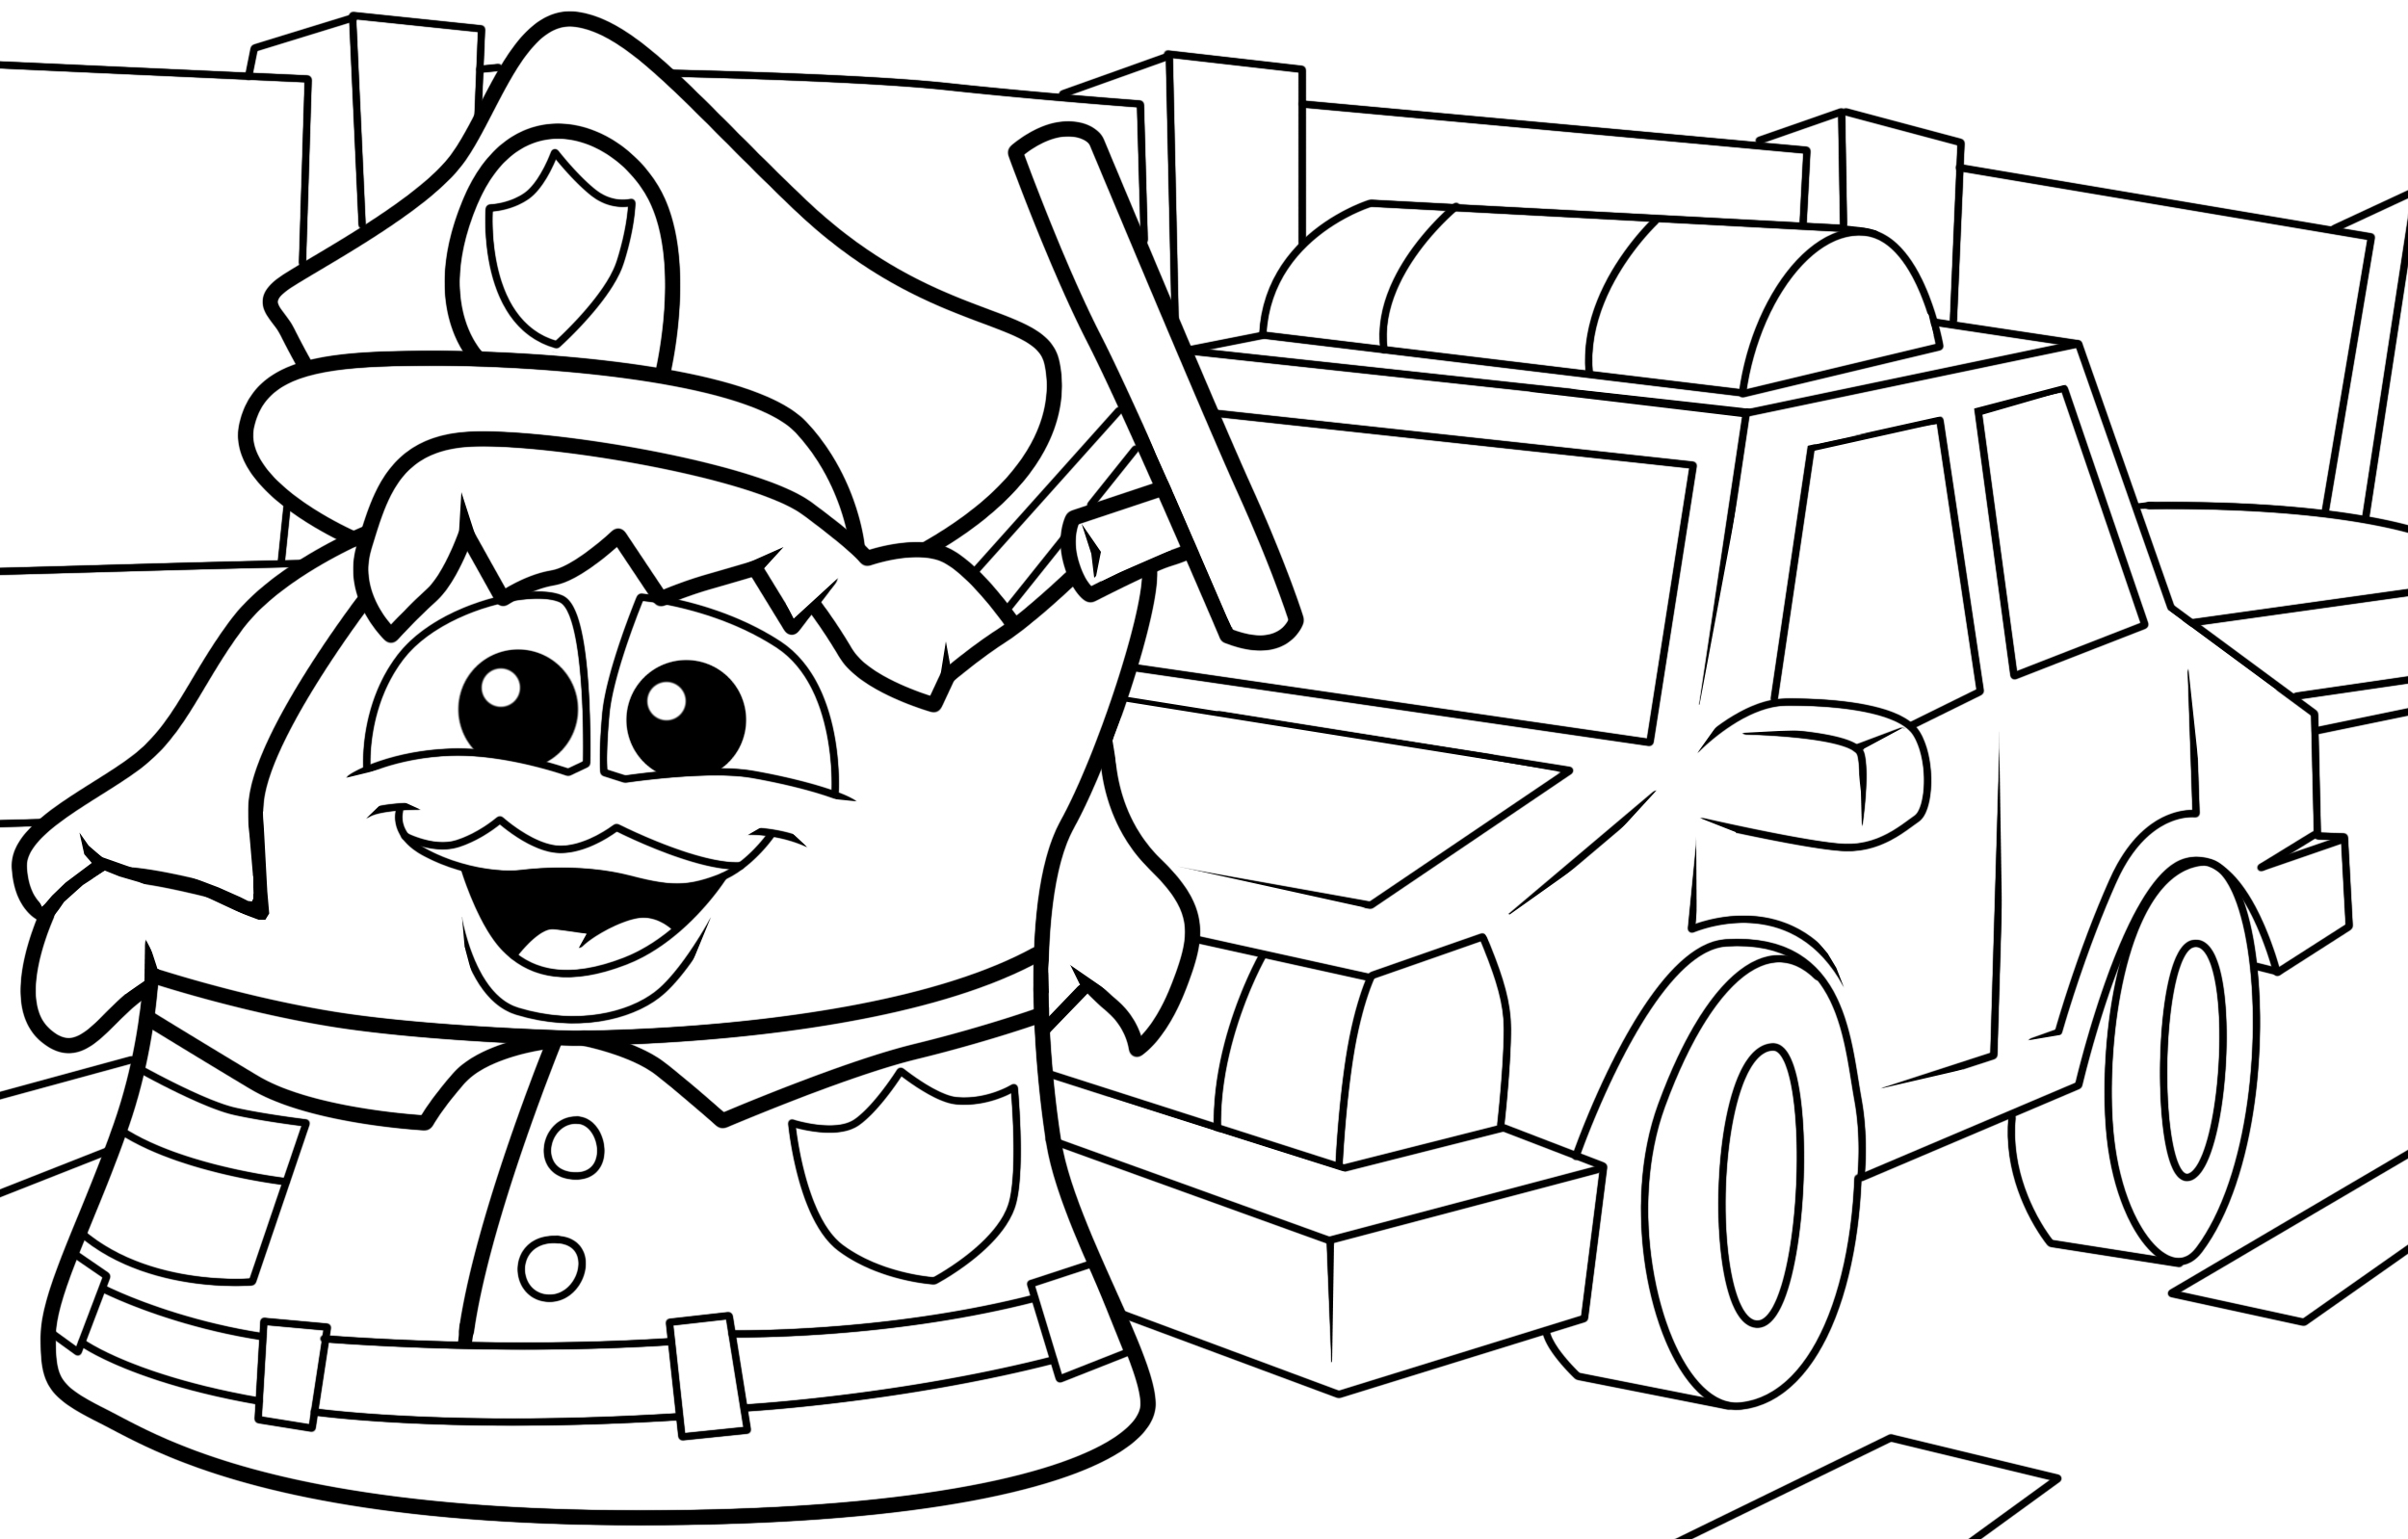 Coloring pages recess ~ Playground Coloring Pages Printable Sketch Coloring Page